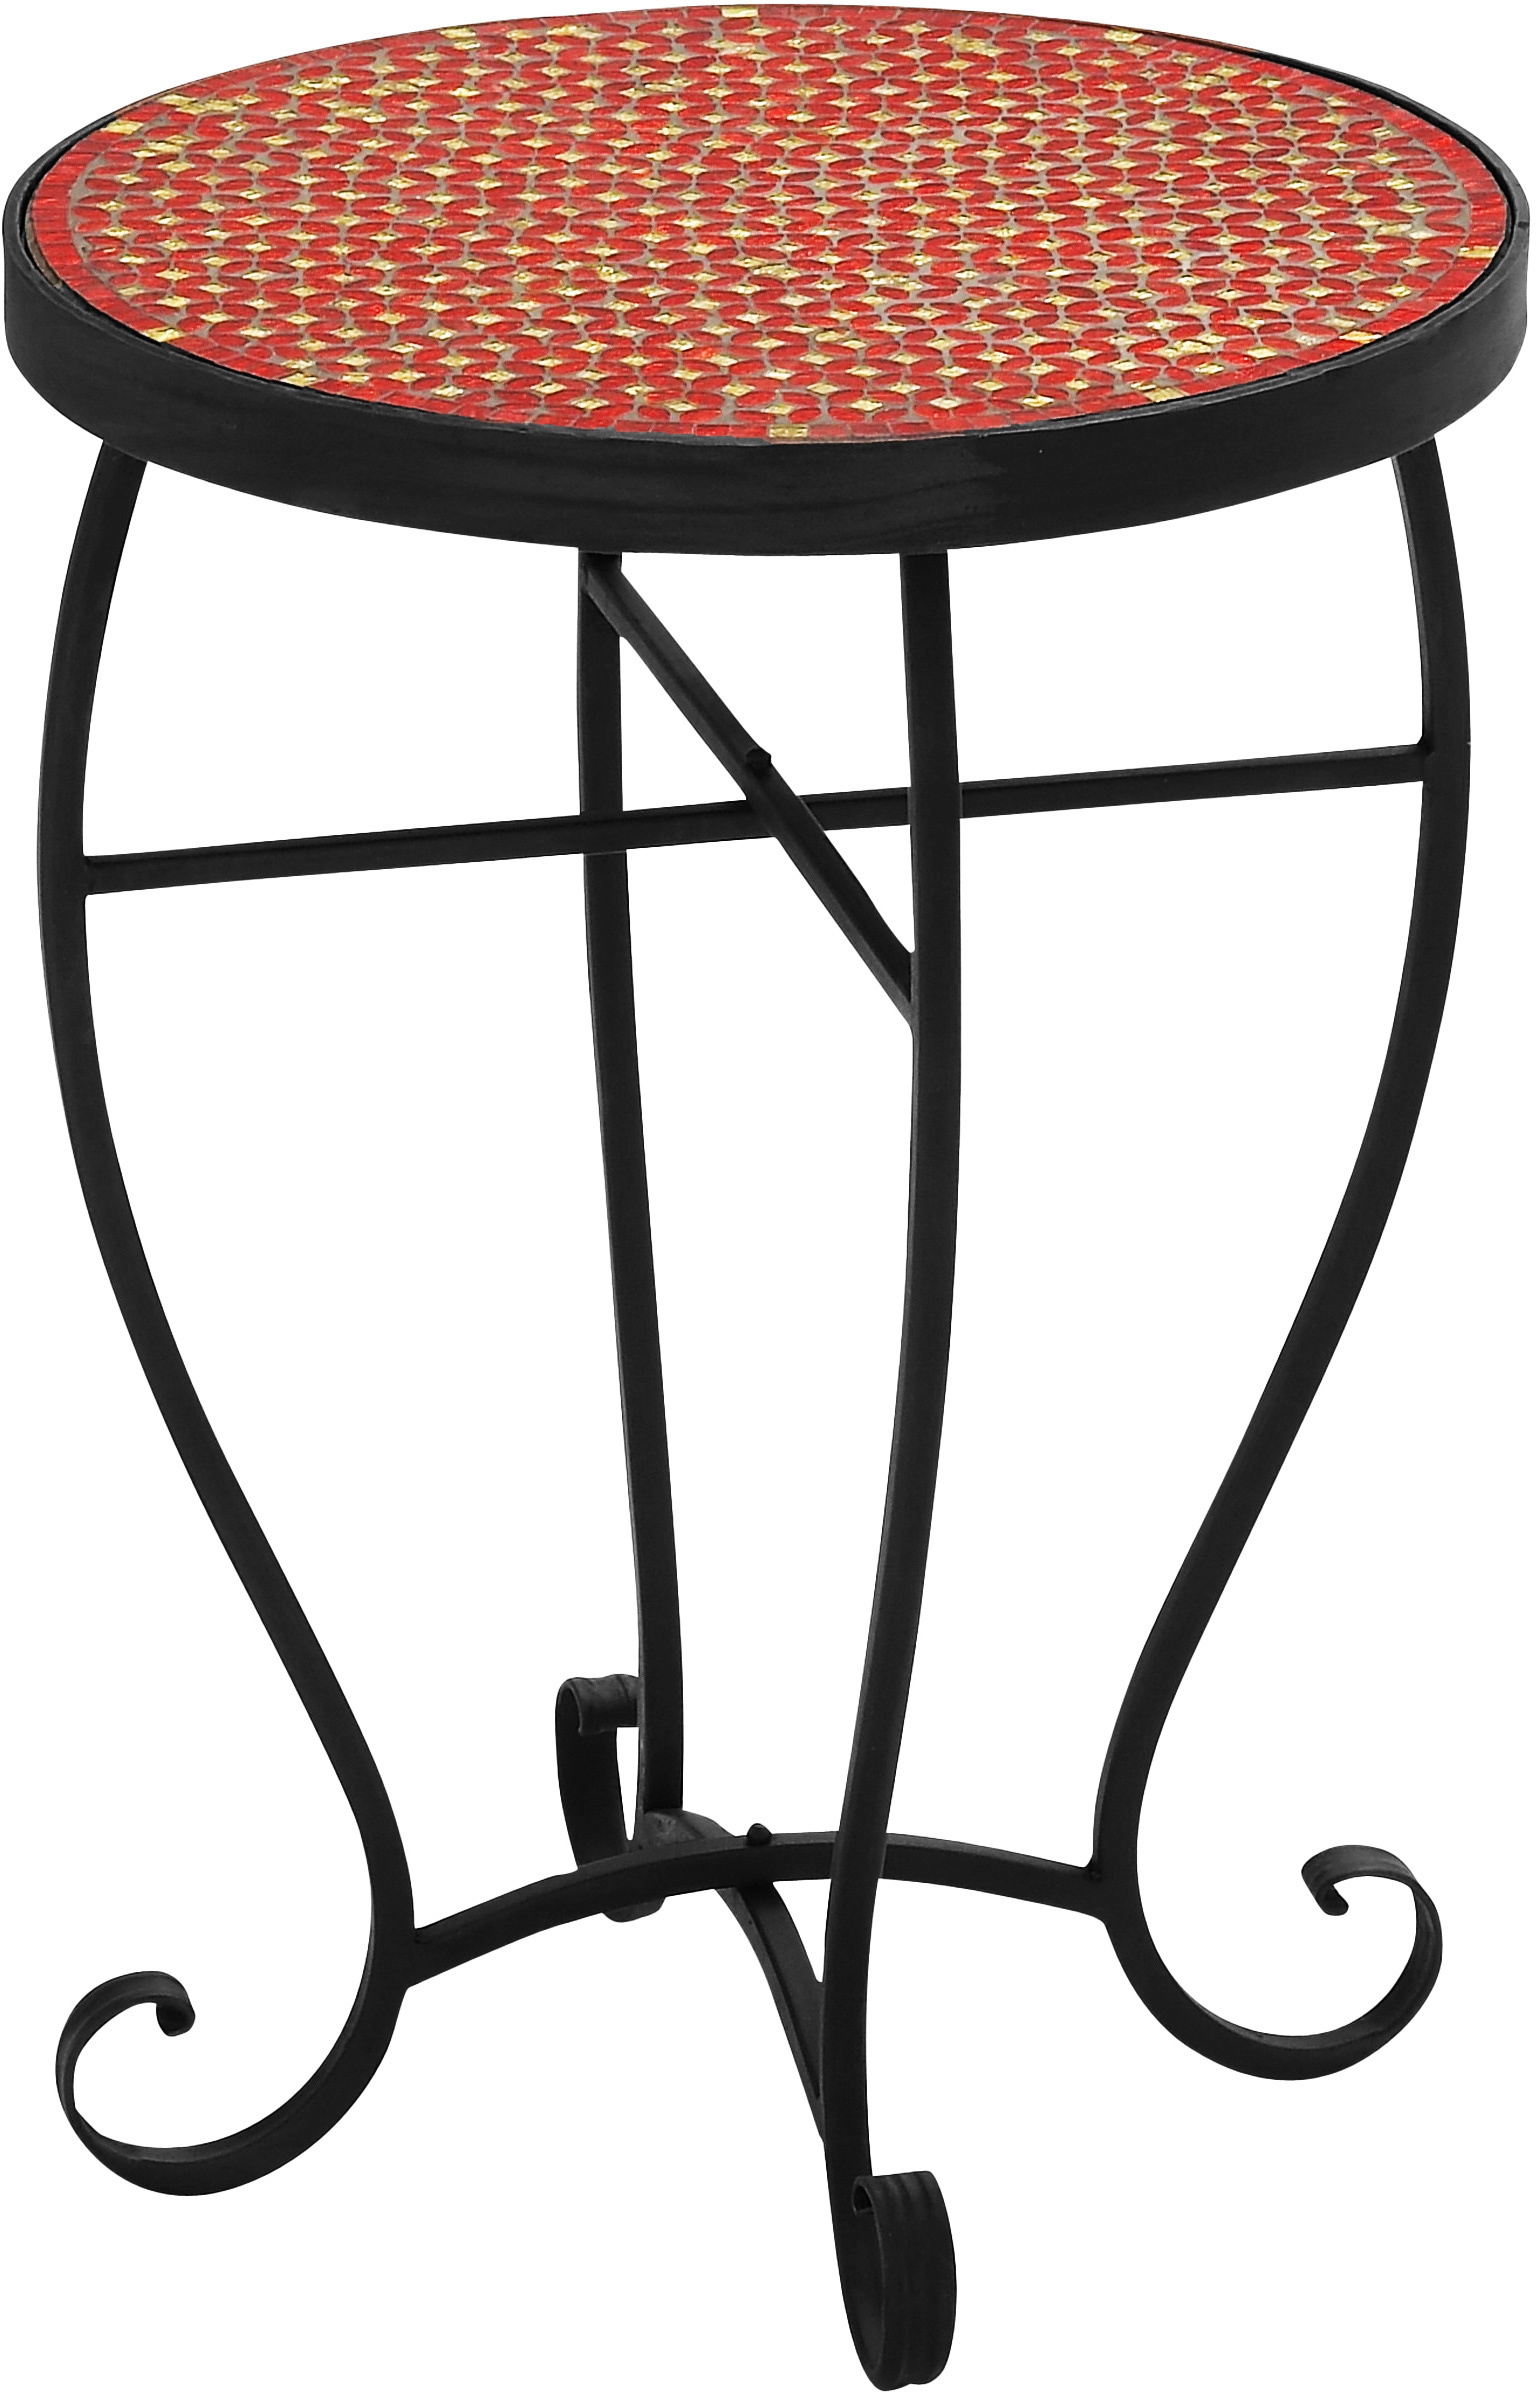 outdoor accent table mosaic red round side indoor end chrome patio reproduction designer furniture black and white linens winsome instructions nesting dining chairs rectangular